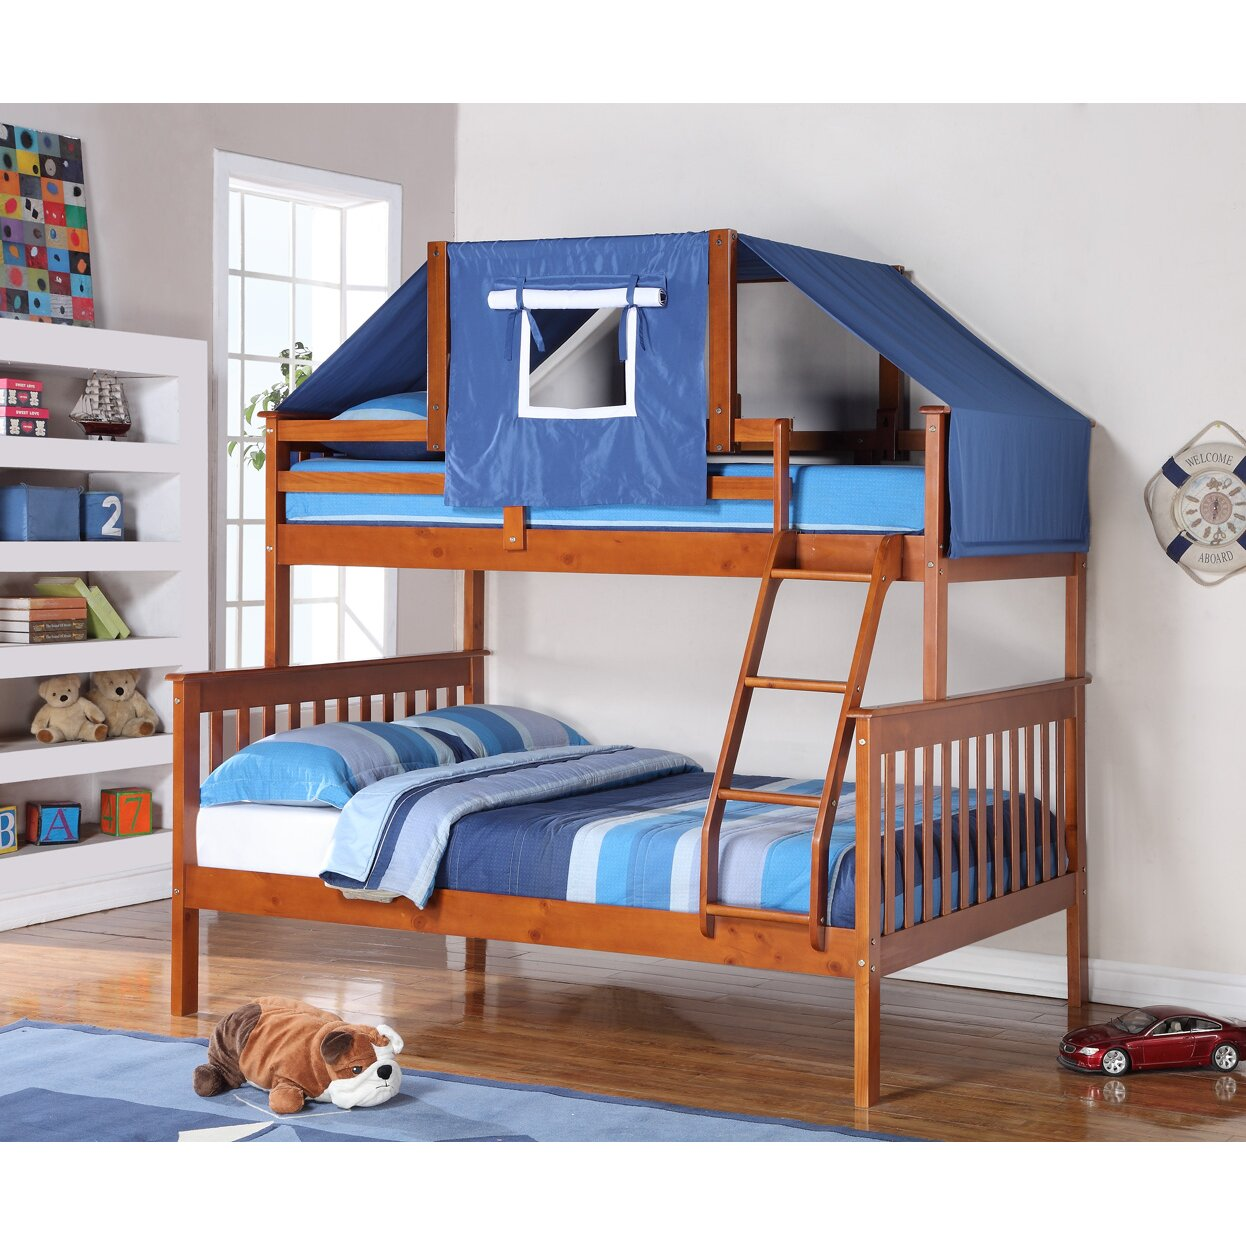 donco kids donco kids twin over full futon bunk bed reviews wayfair. Black Bedroom Furniture Sets. Home Design Ideas